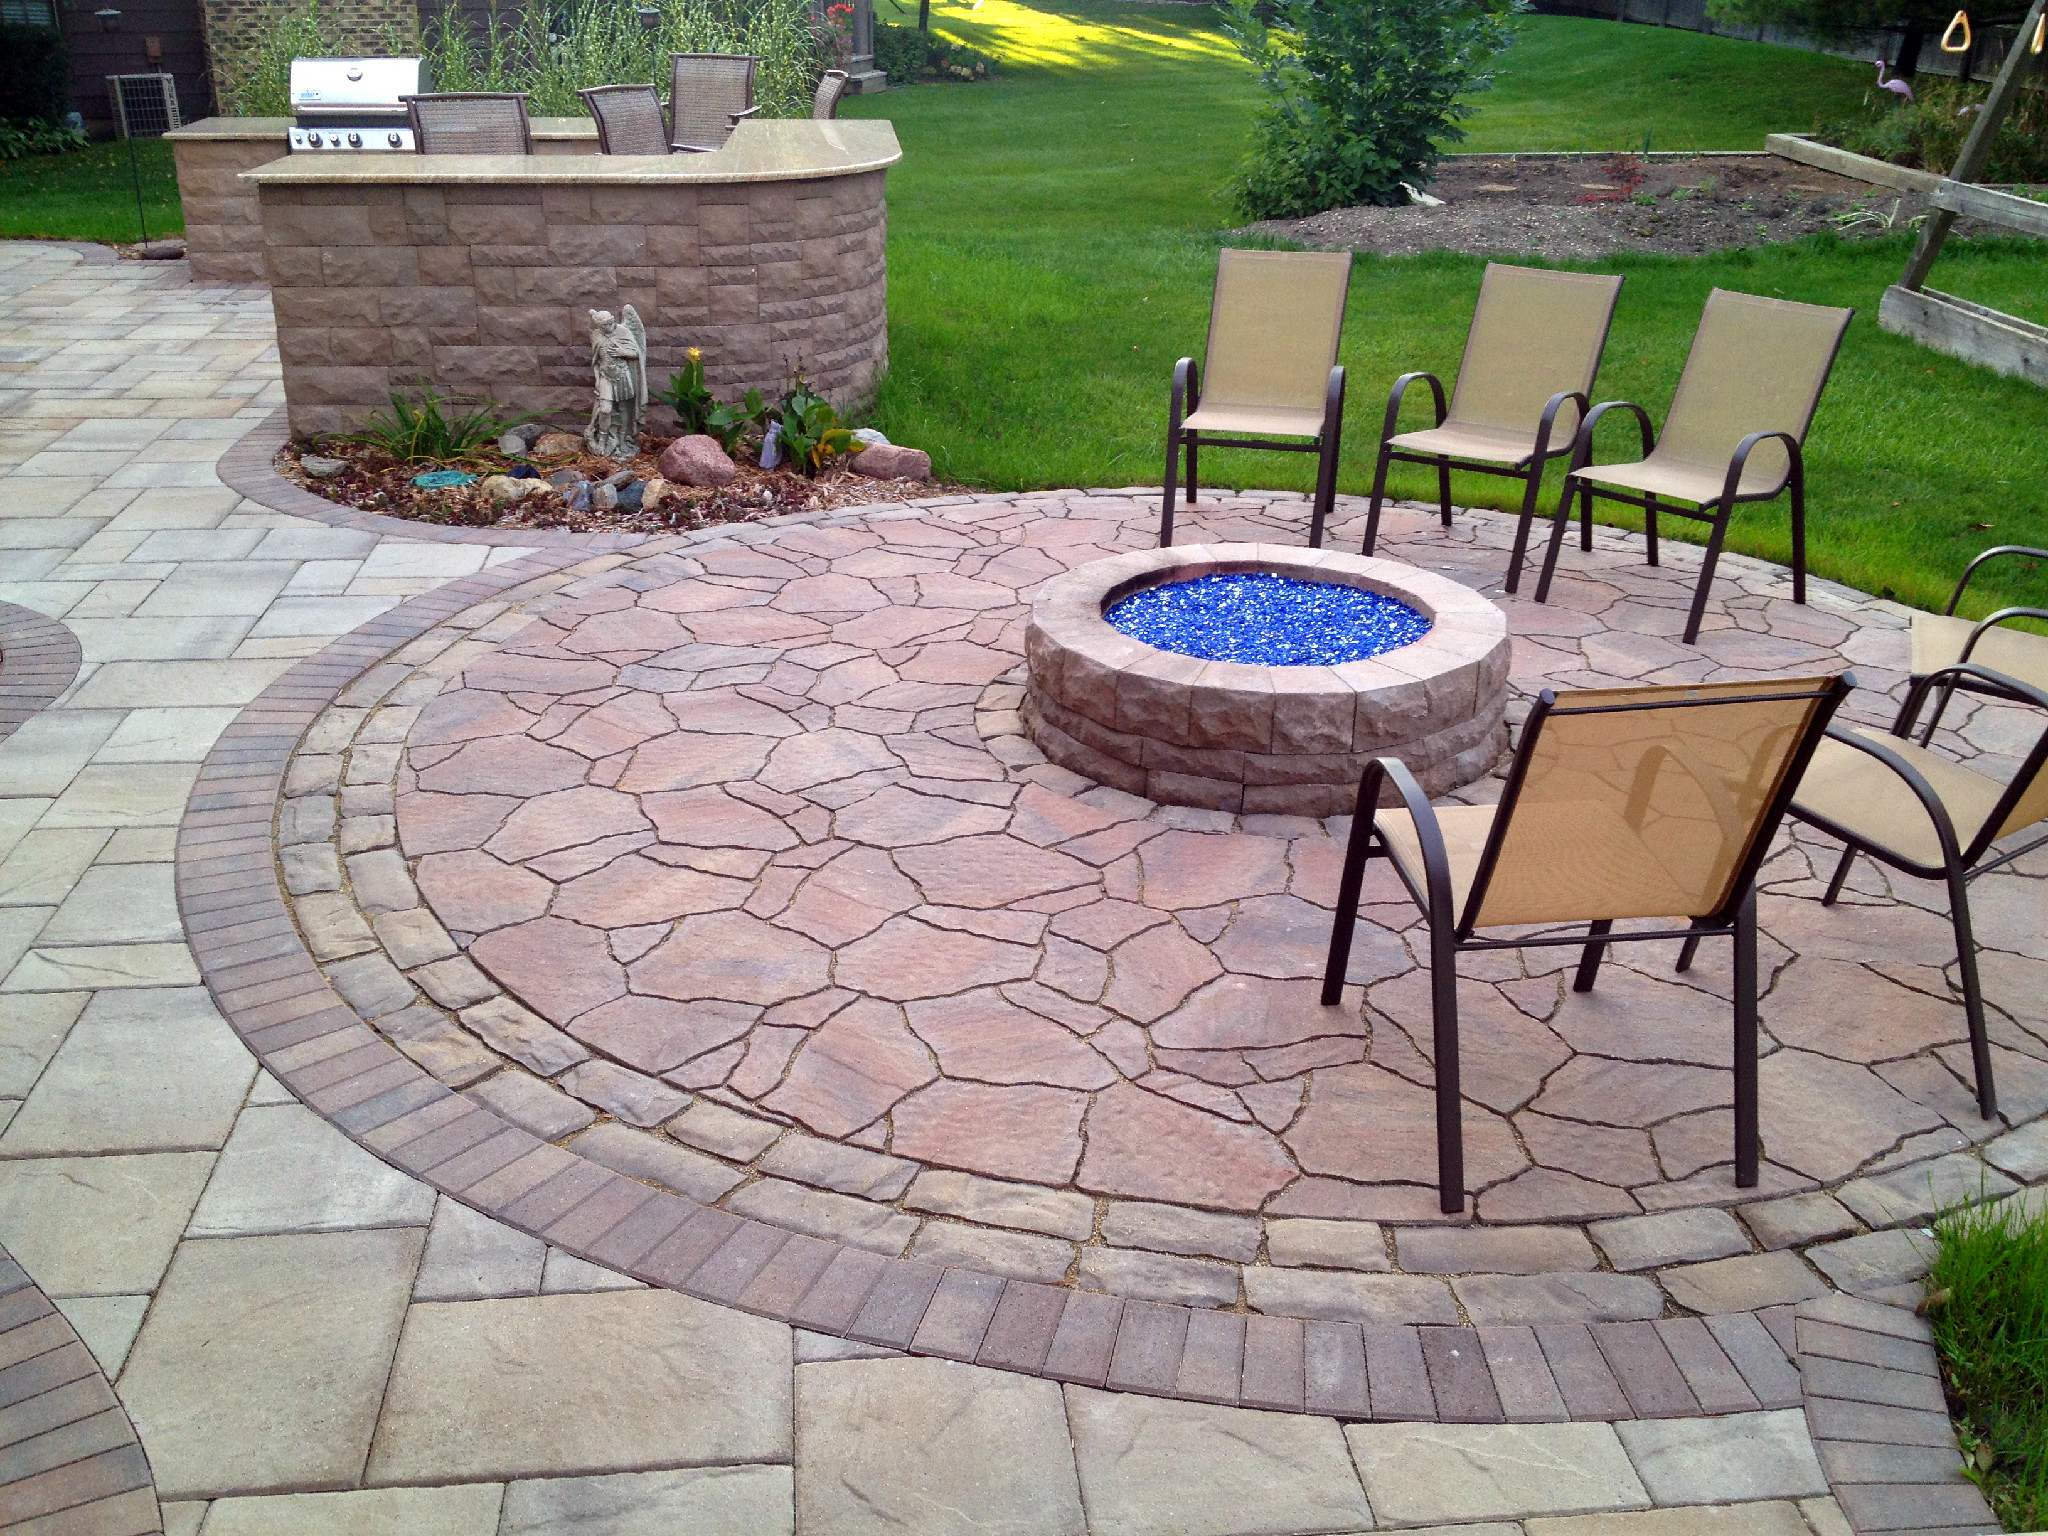 Should I Use Concrete Or Pavers For My Chicagoland Patio?